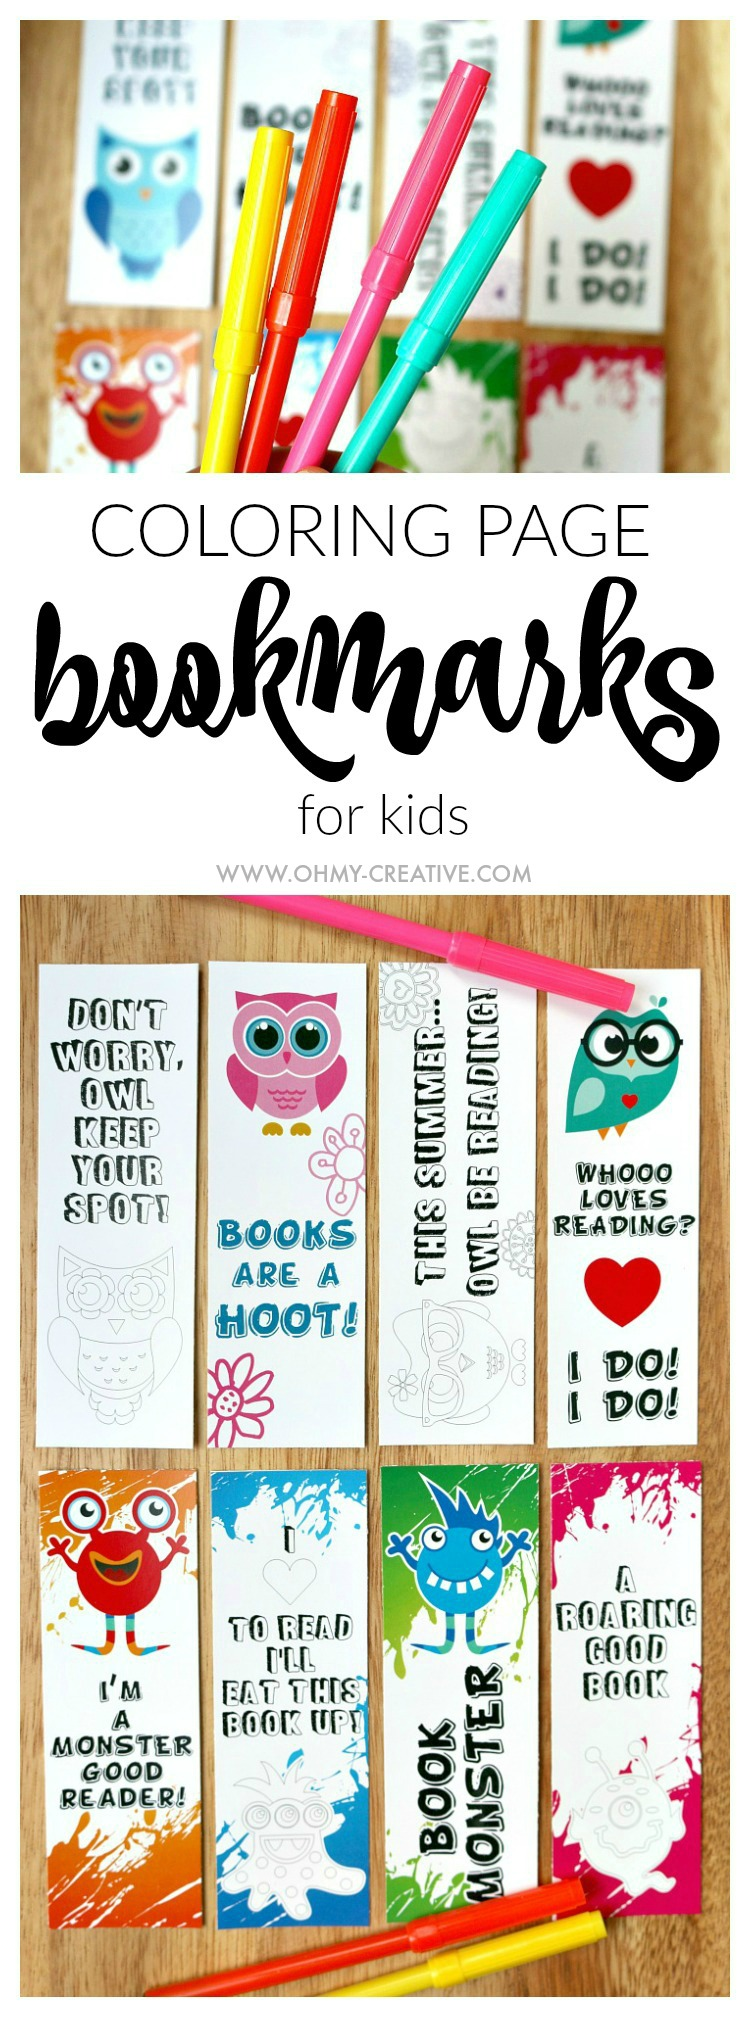 photo relating to Printable Bookmarks for Kids titled Printable Bookmark Coloring Internet pages for Little ones - Oh My Imaginative